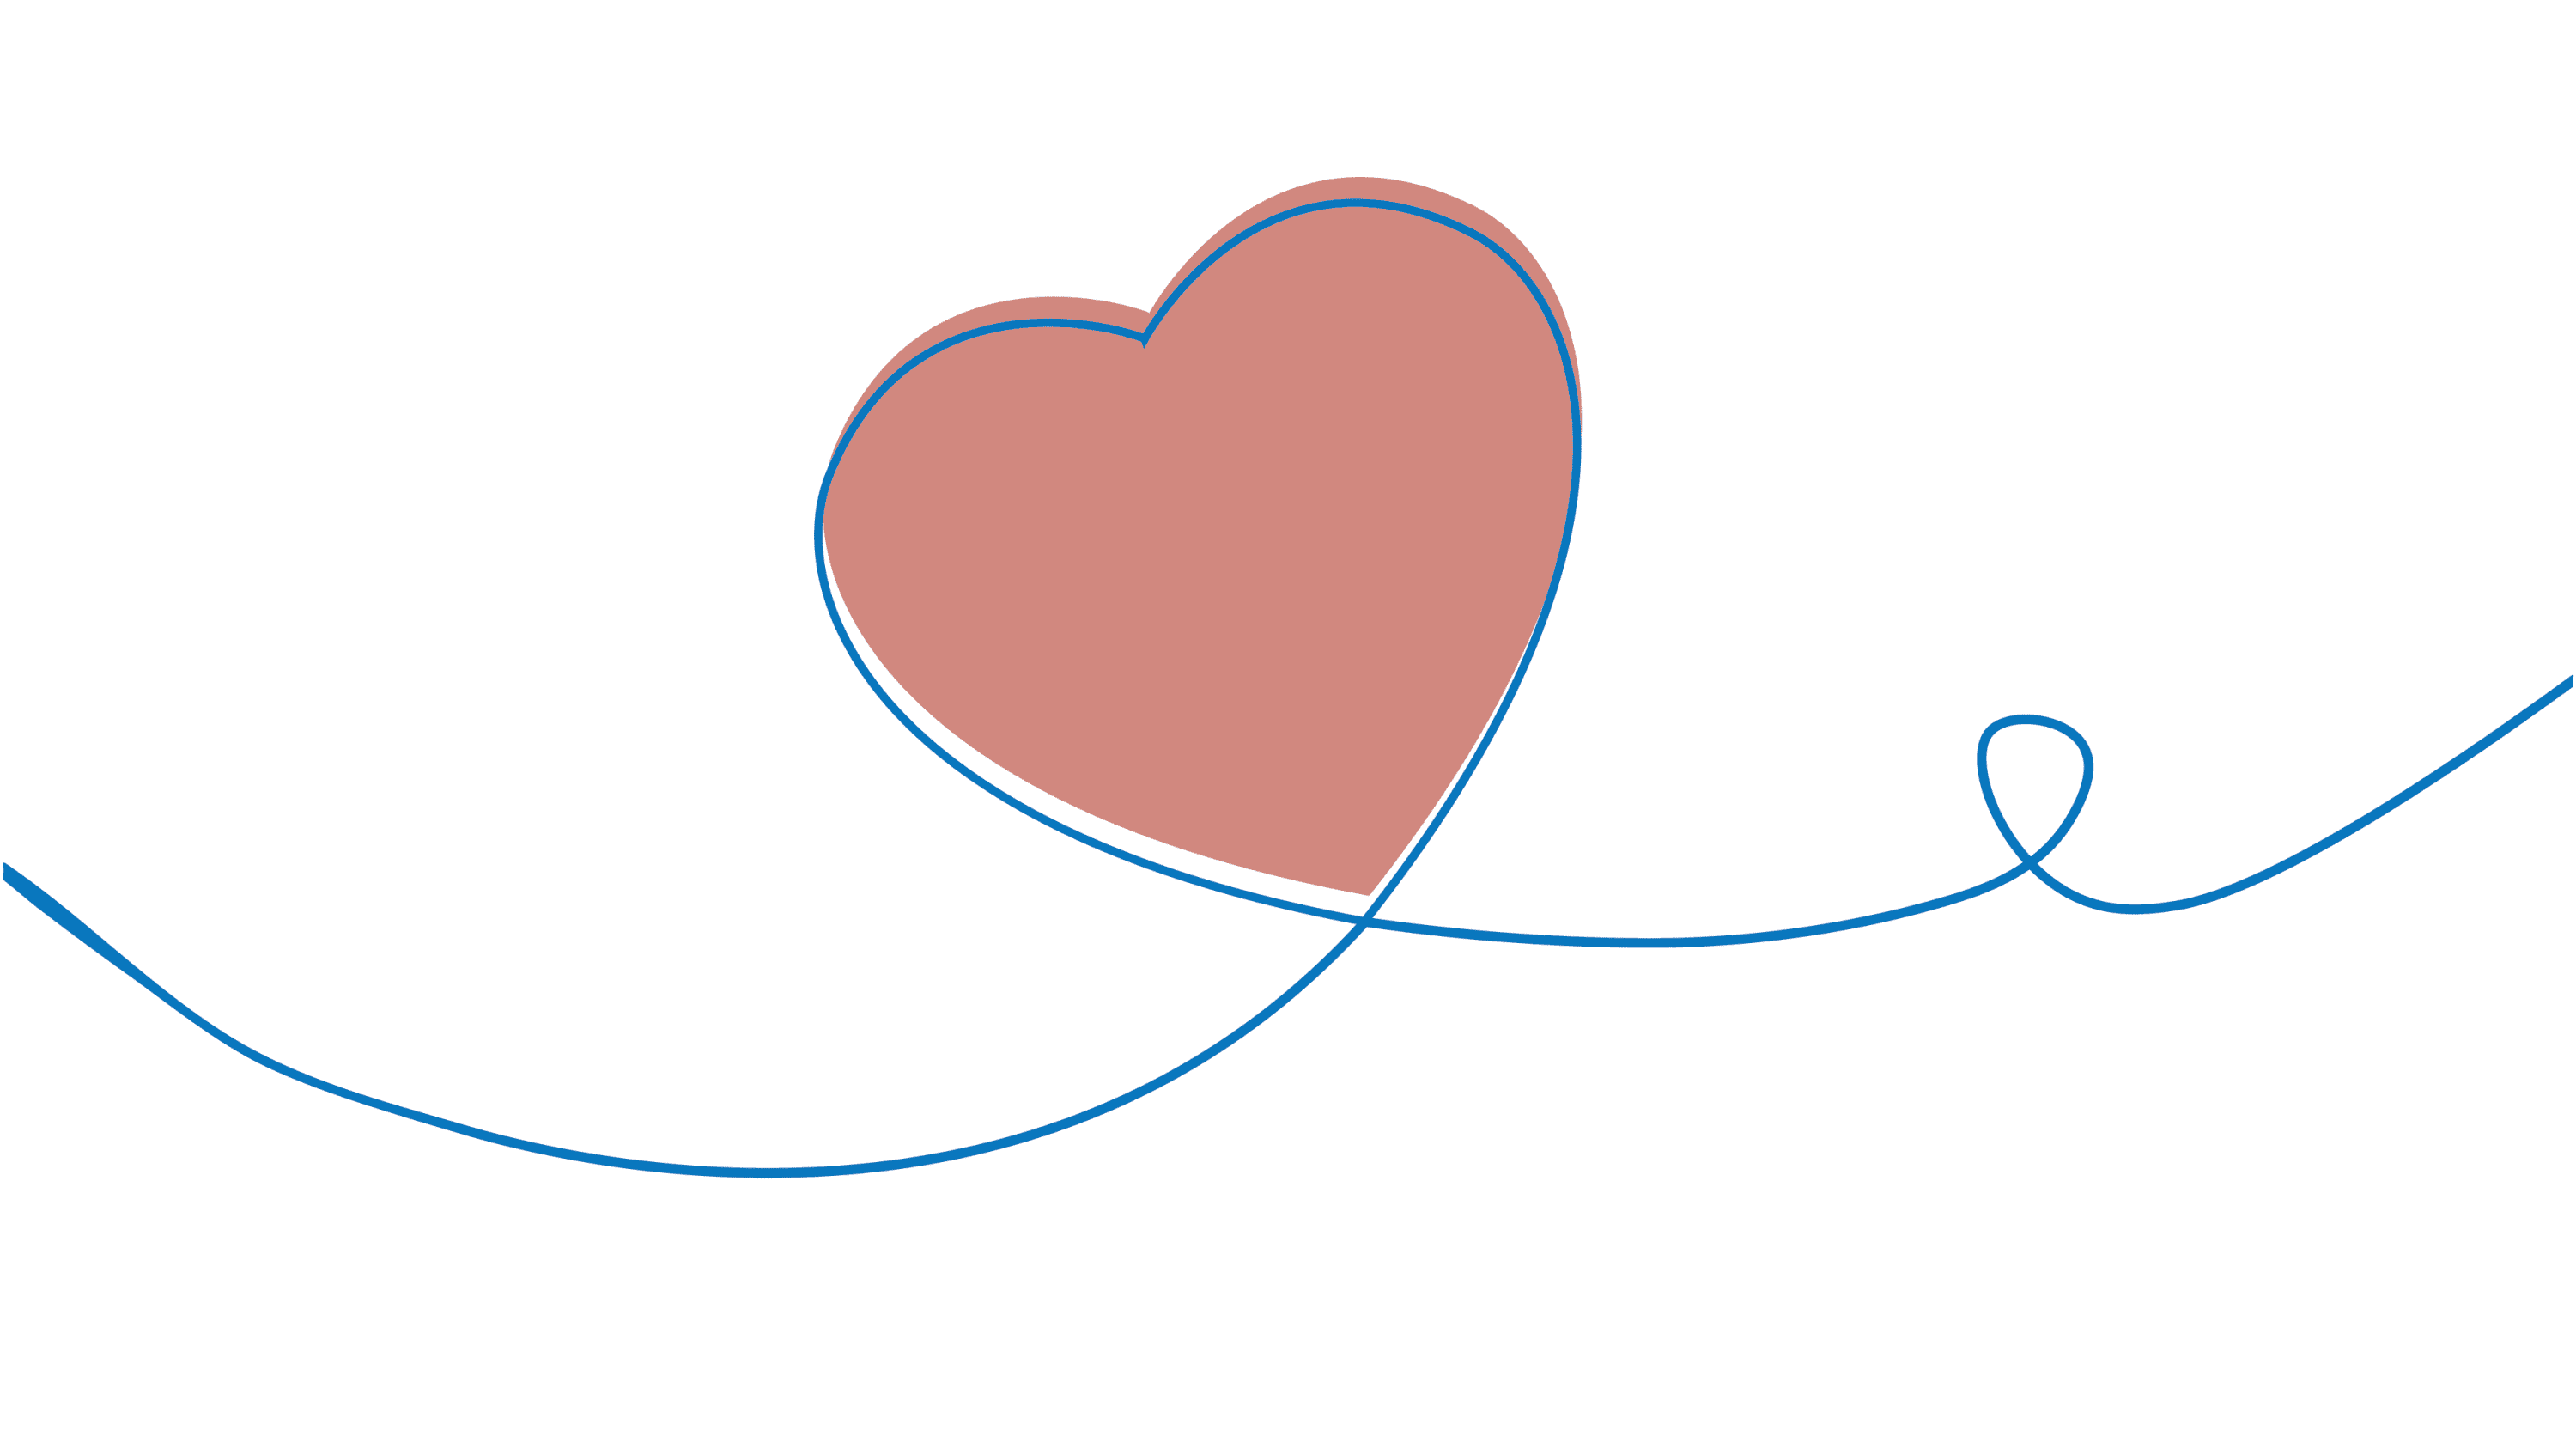 Line drawing of a heart on a string.